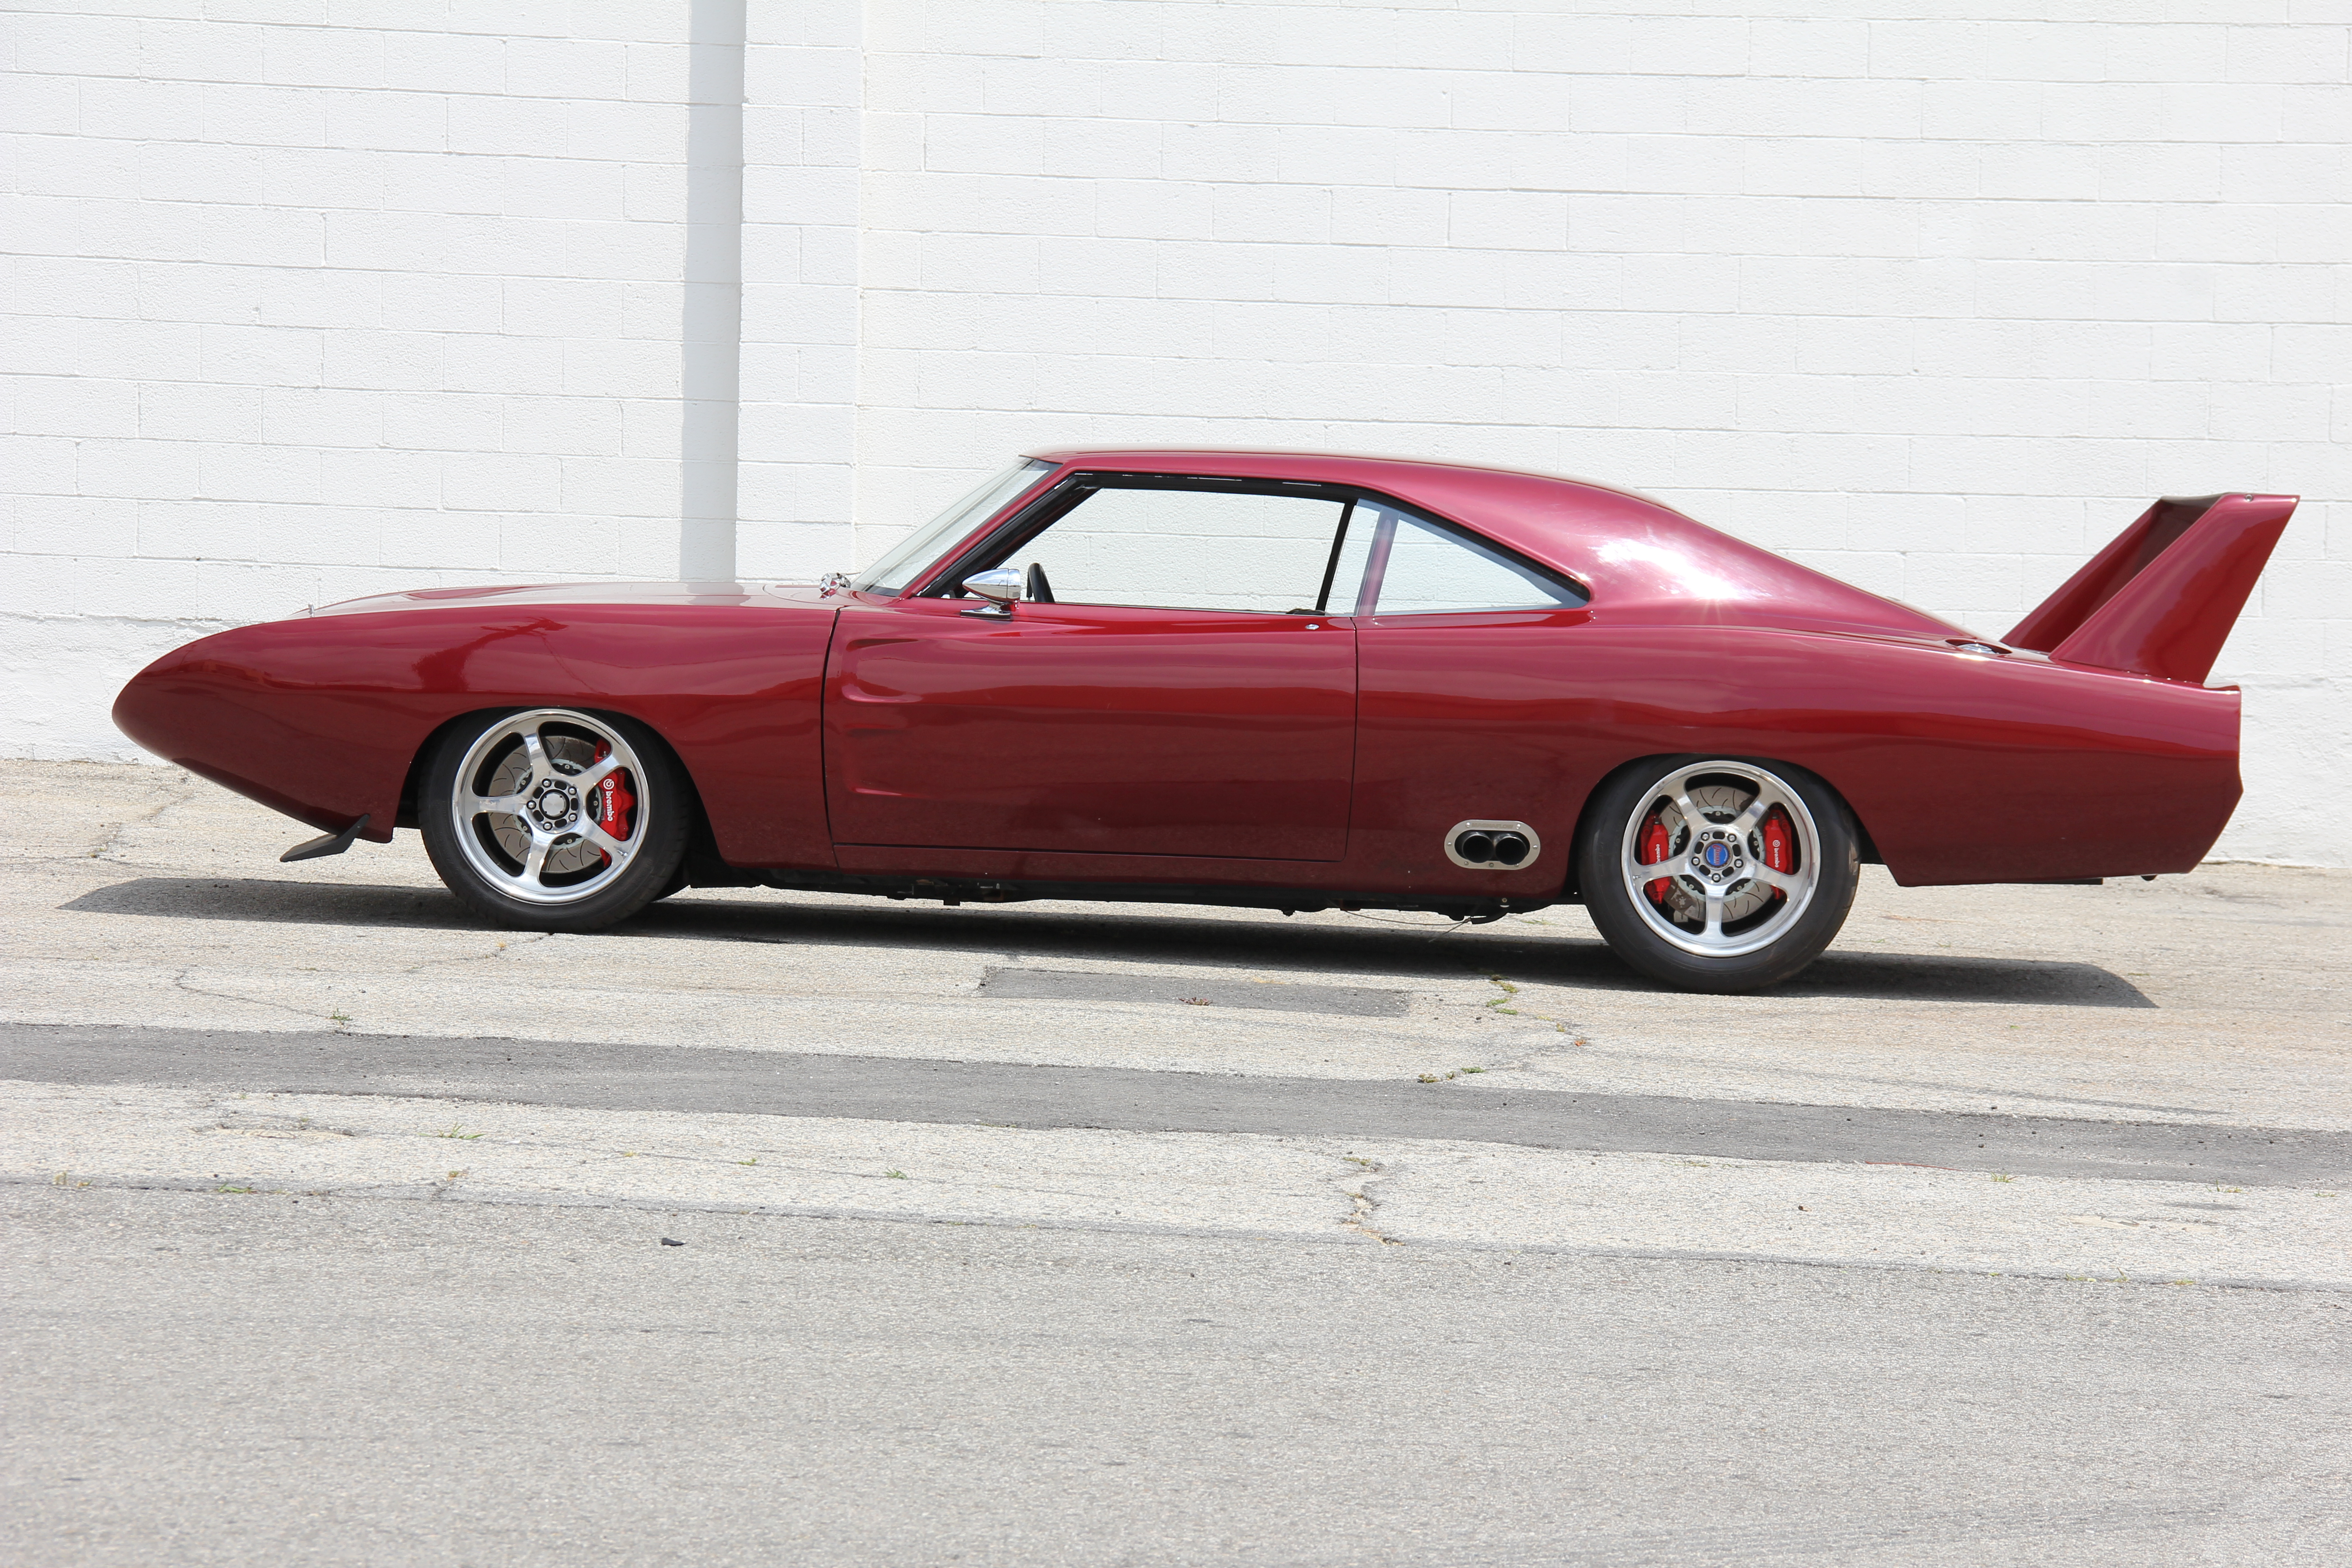 3dtuning of dodge charger daytona coupe 1969 unique on. Cars Review. Best American Auto & Cars Review